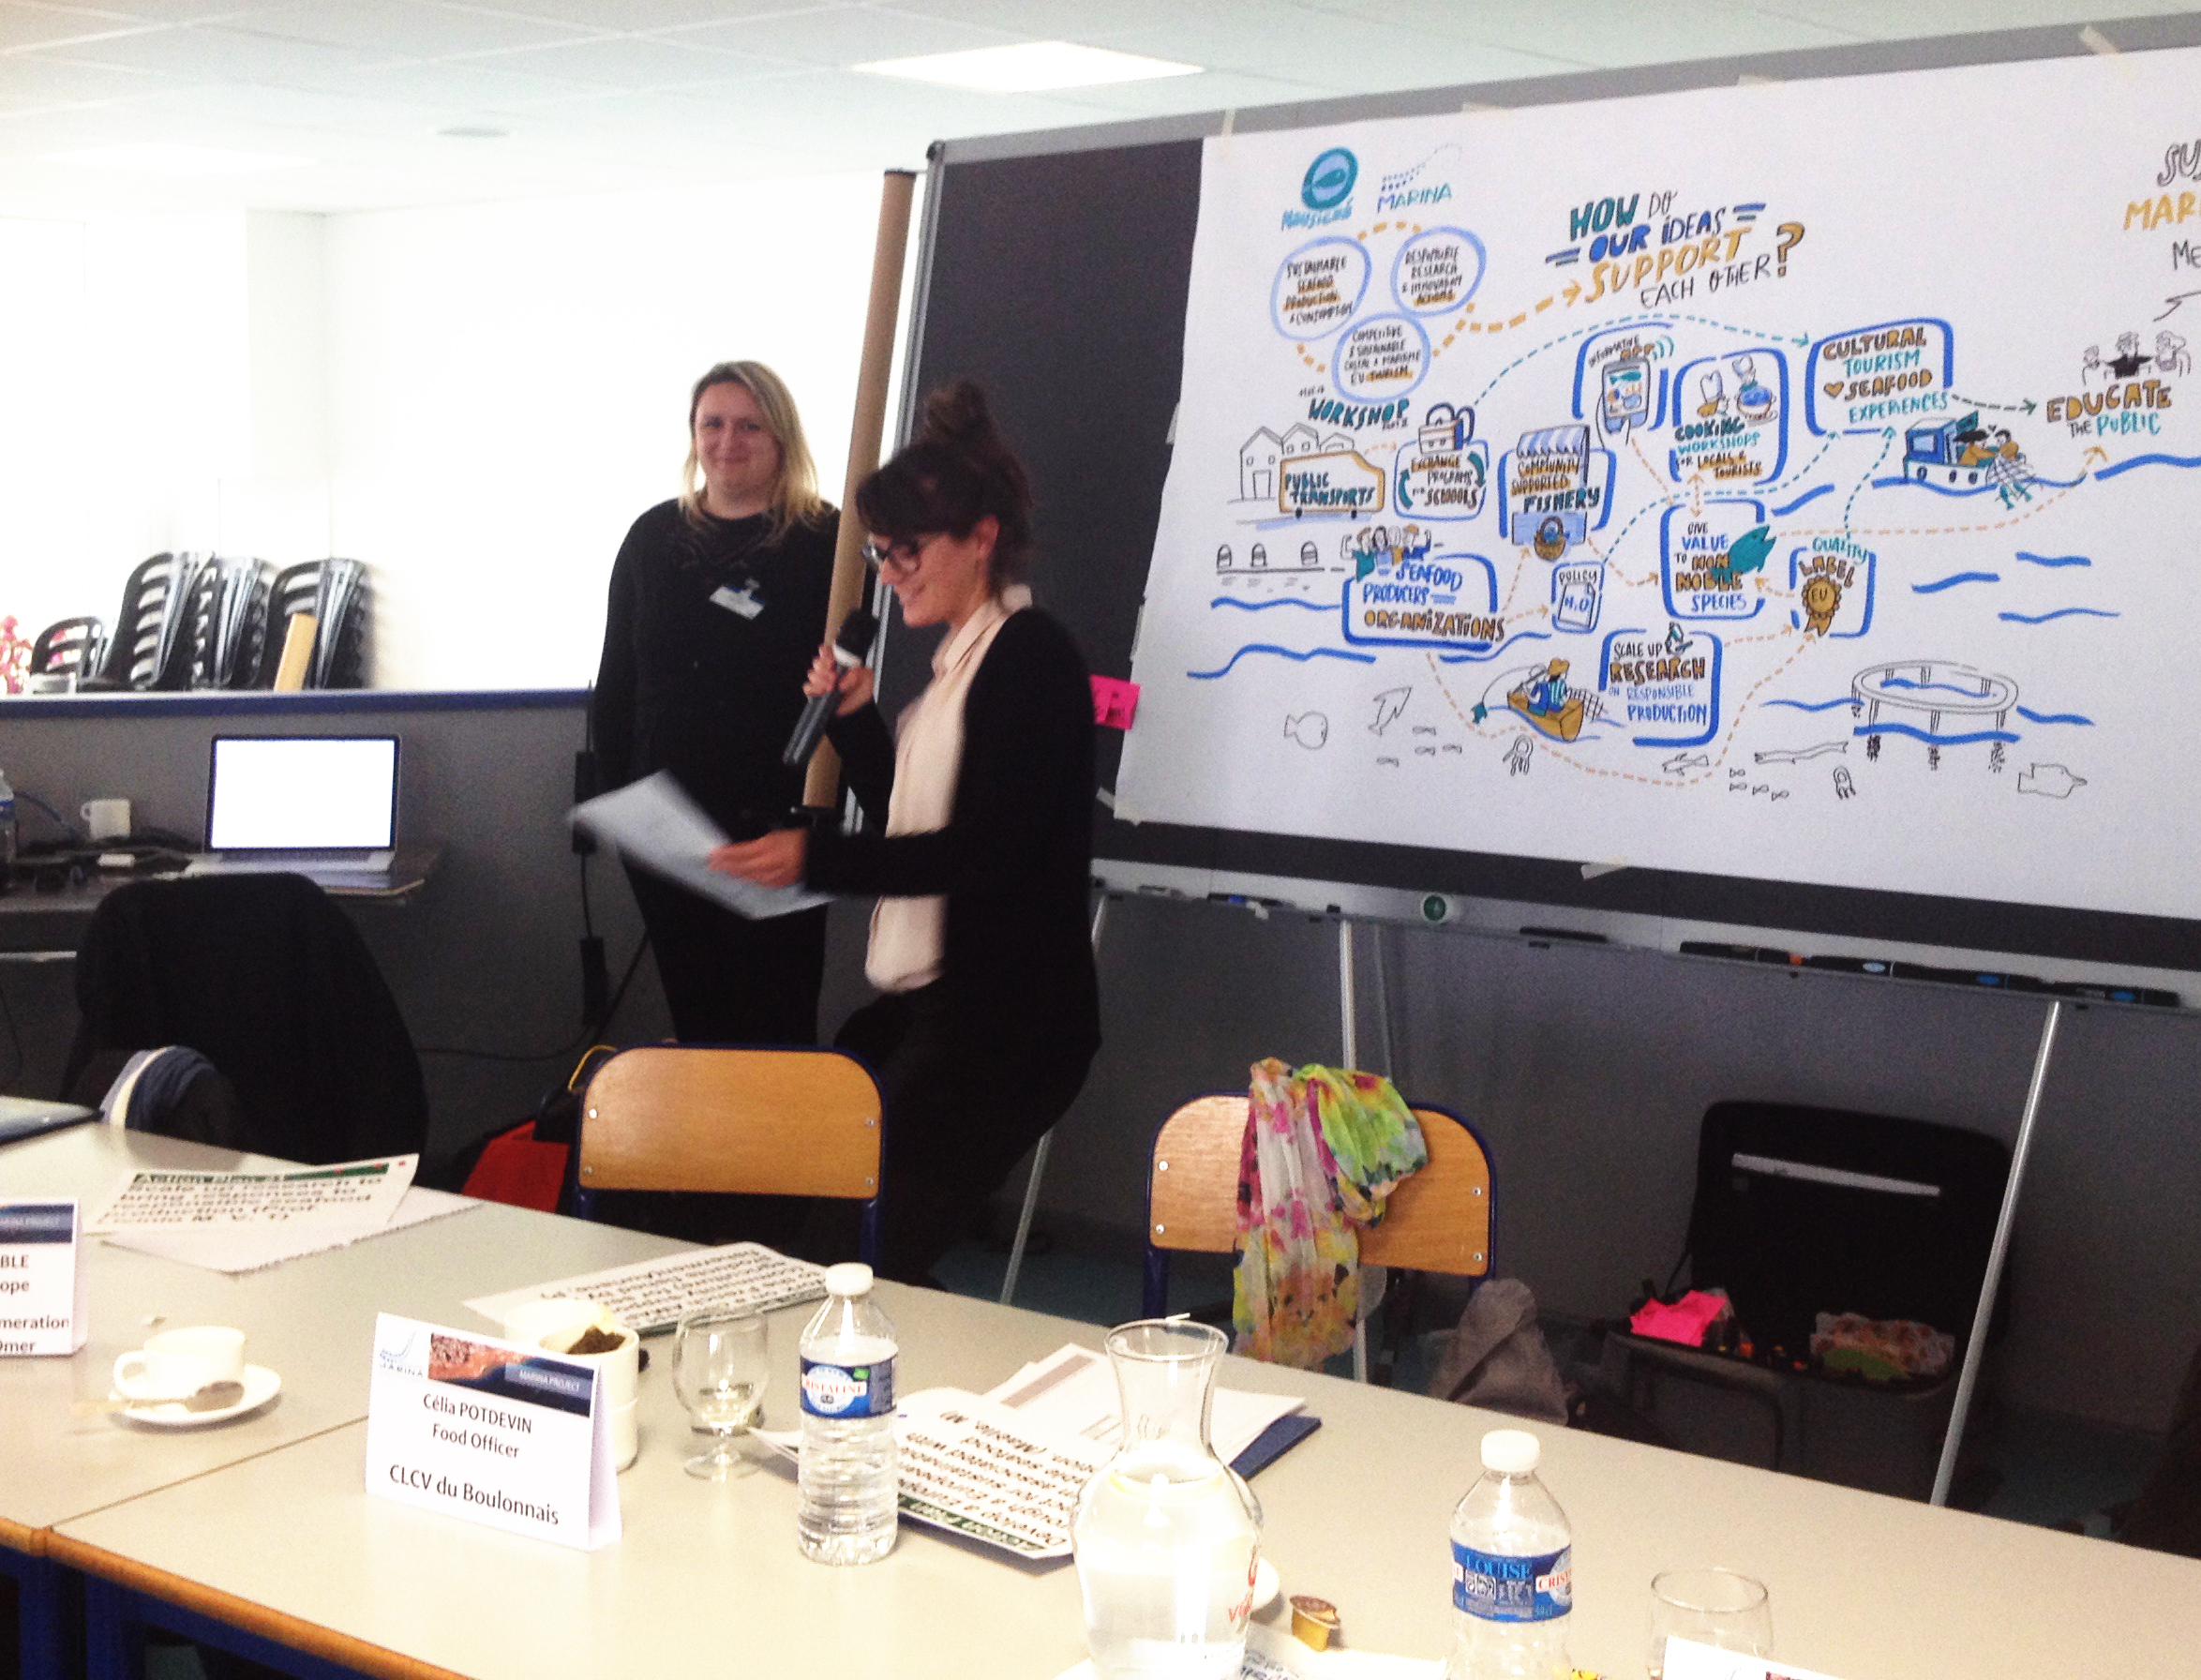 At the end of the day, the participants presented their ideas for sustainable actions. The graphic recording in the background served as visual reminder for the audience